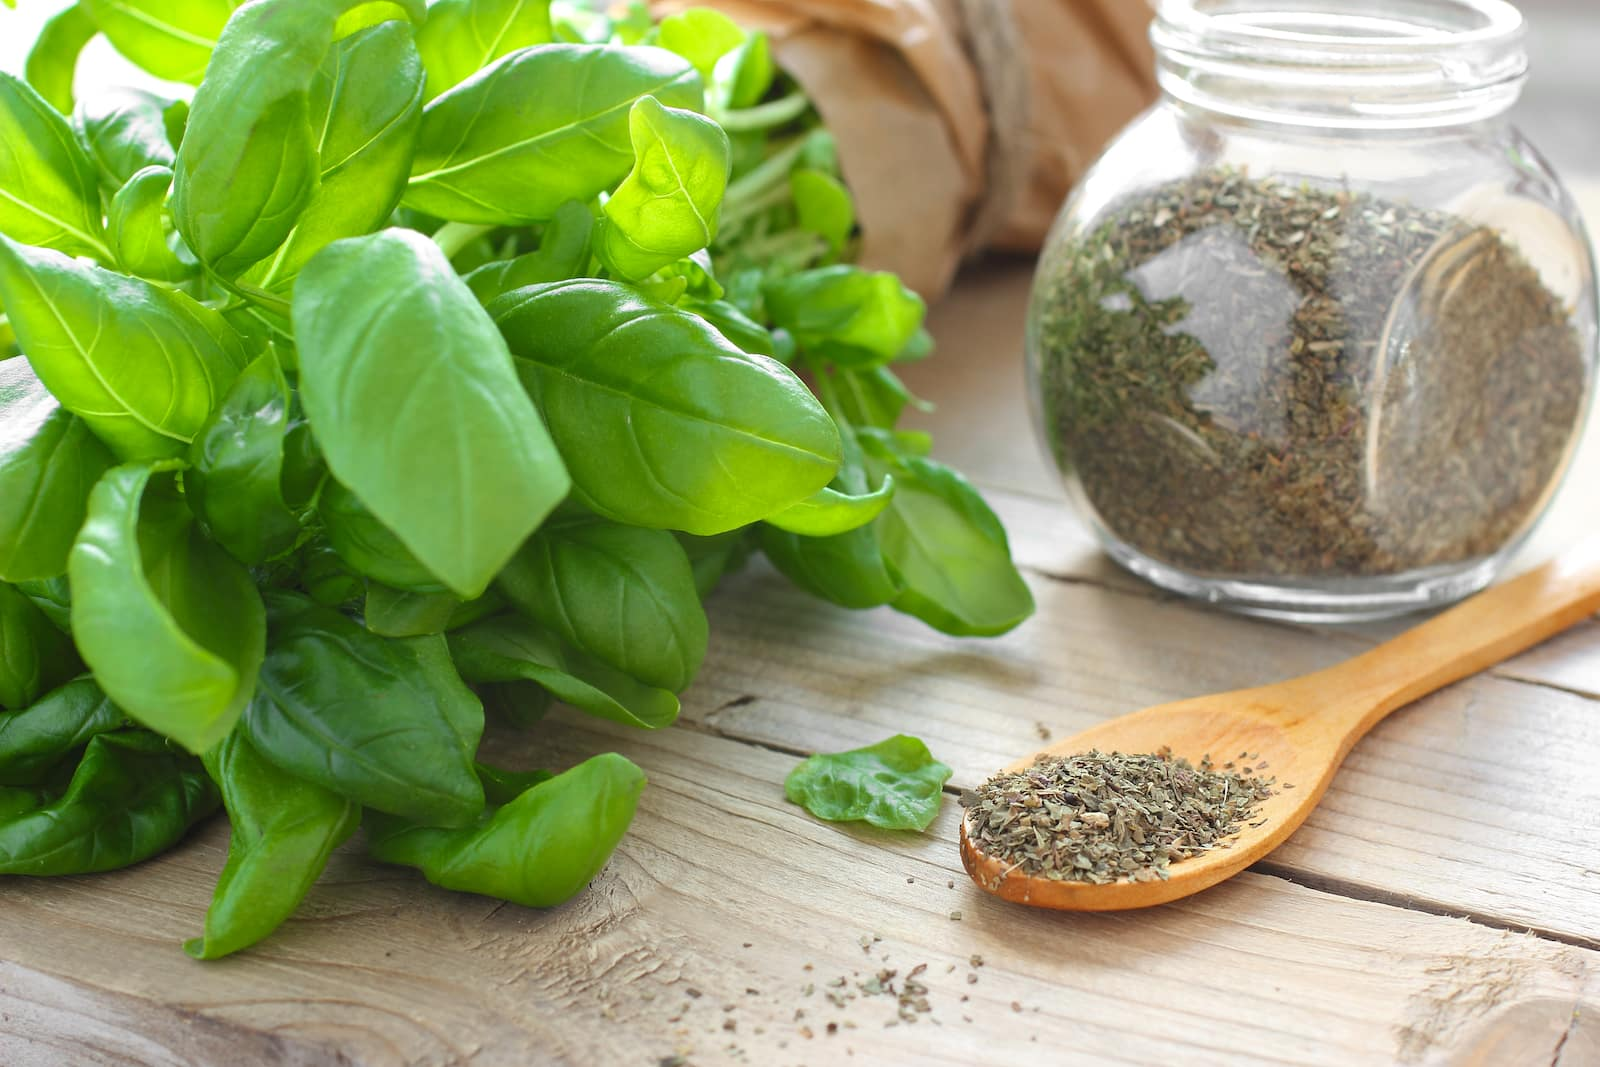 What The Conversion of 1/2 Cup Fresh Basil to Dried